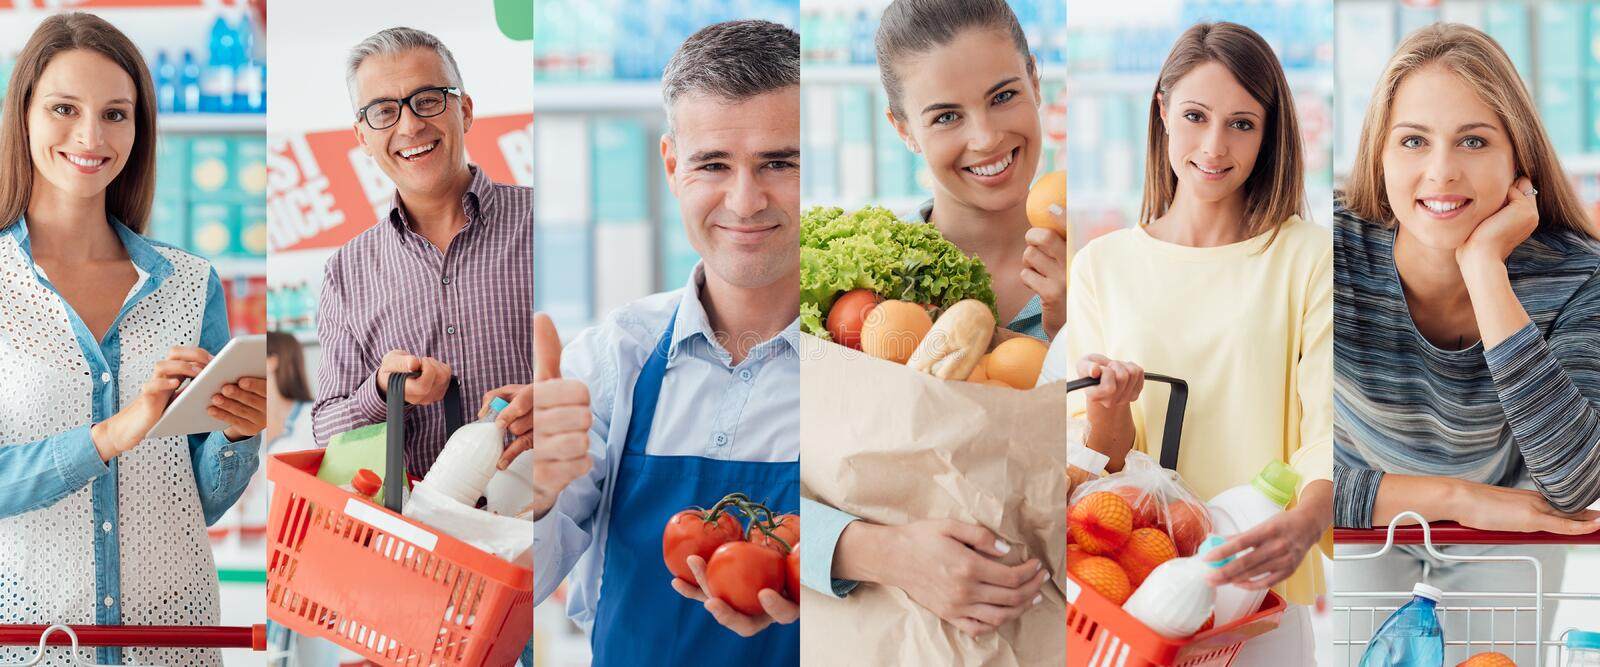 People at the supermarket stock photography